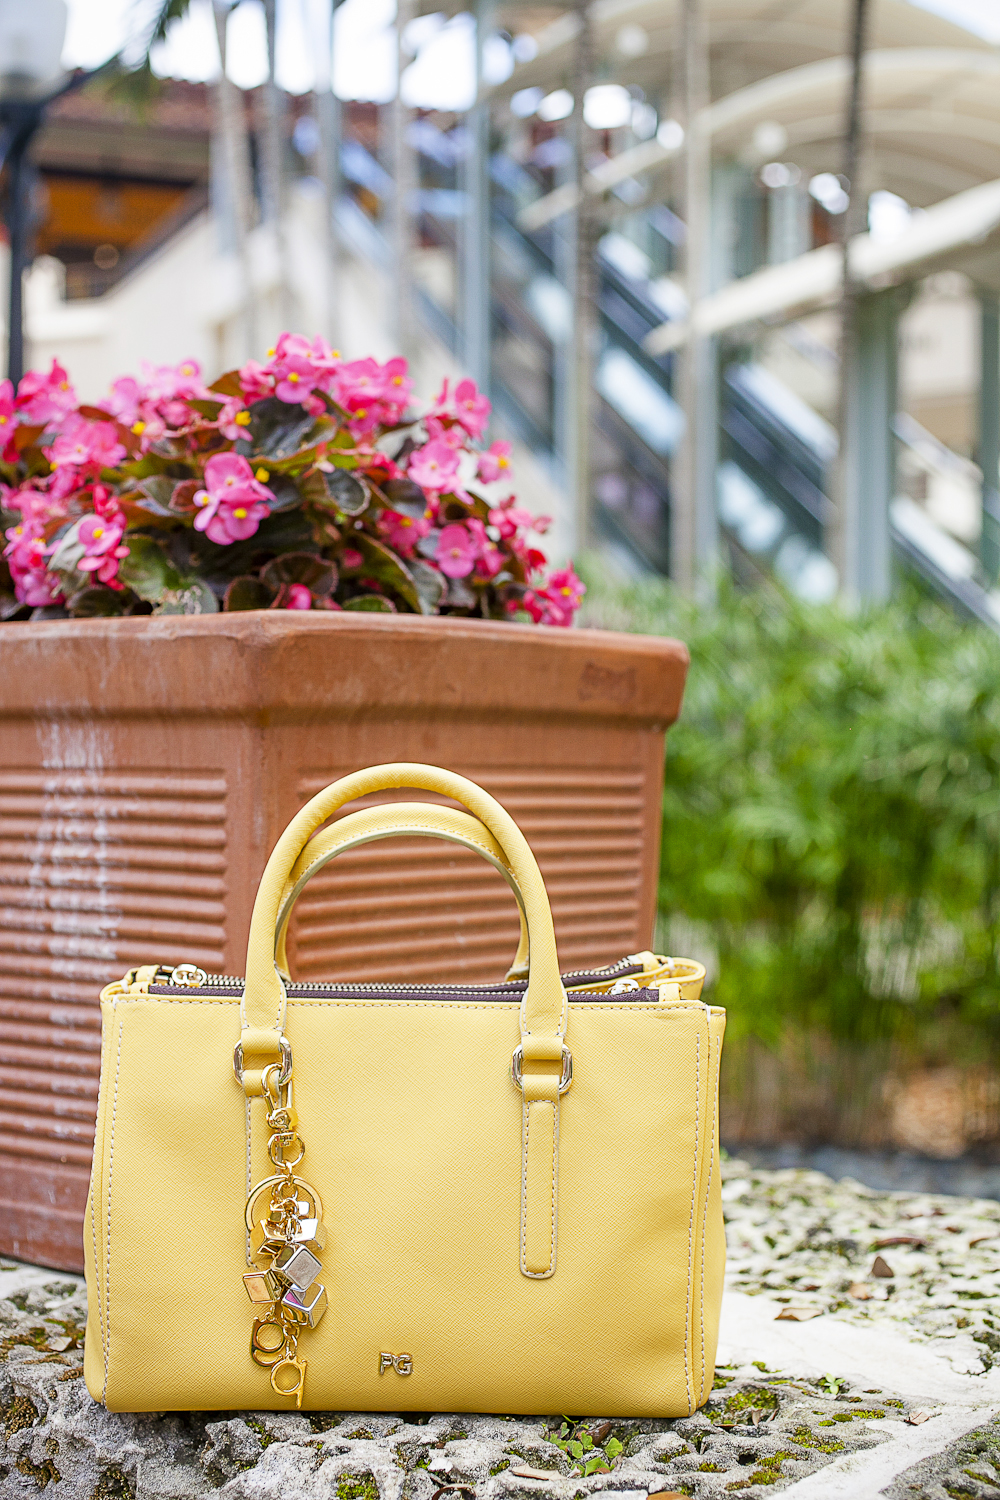 Purificacion Garcia Fashion Blogger Yellow Handbag